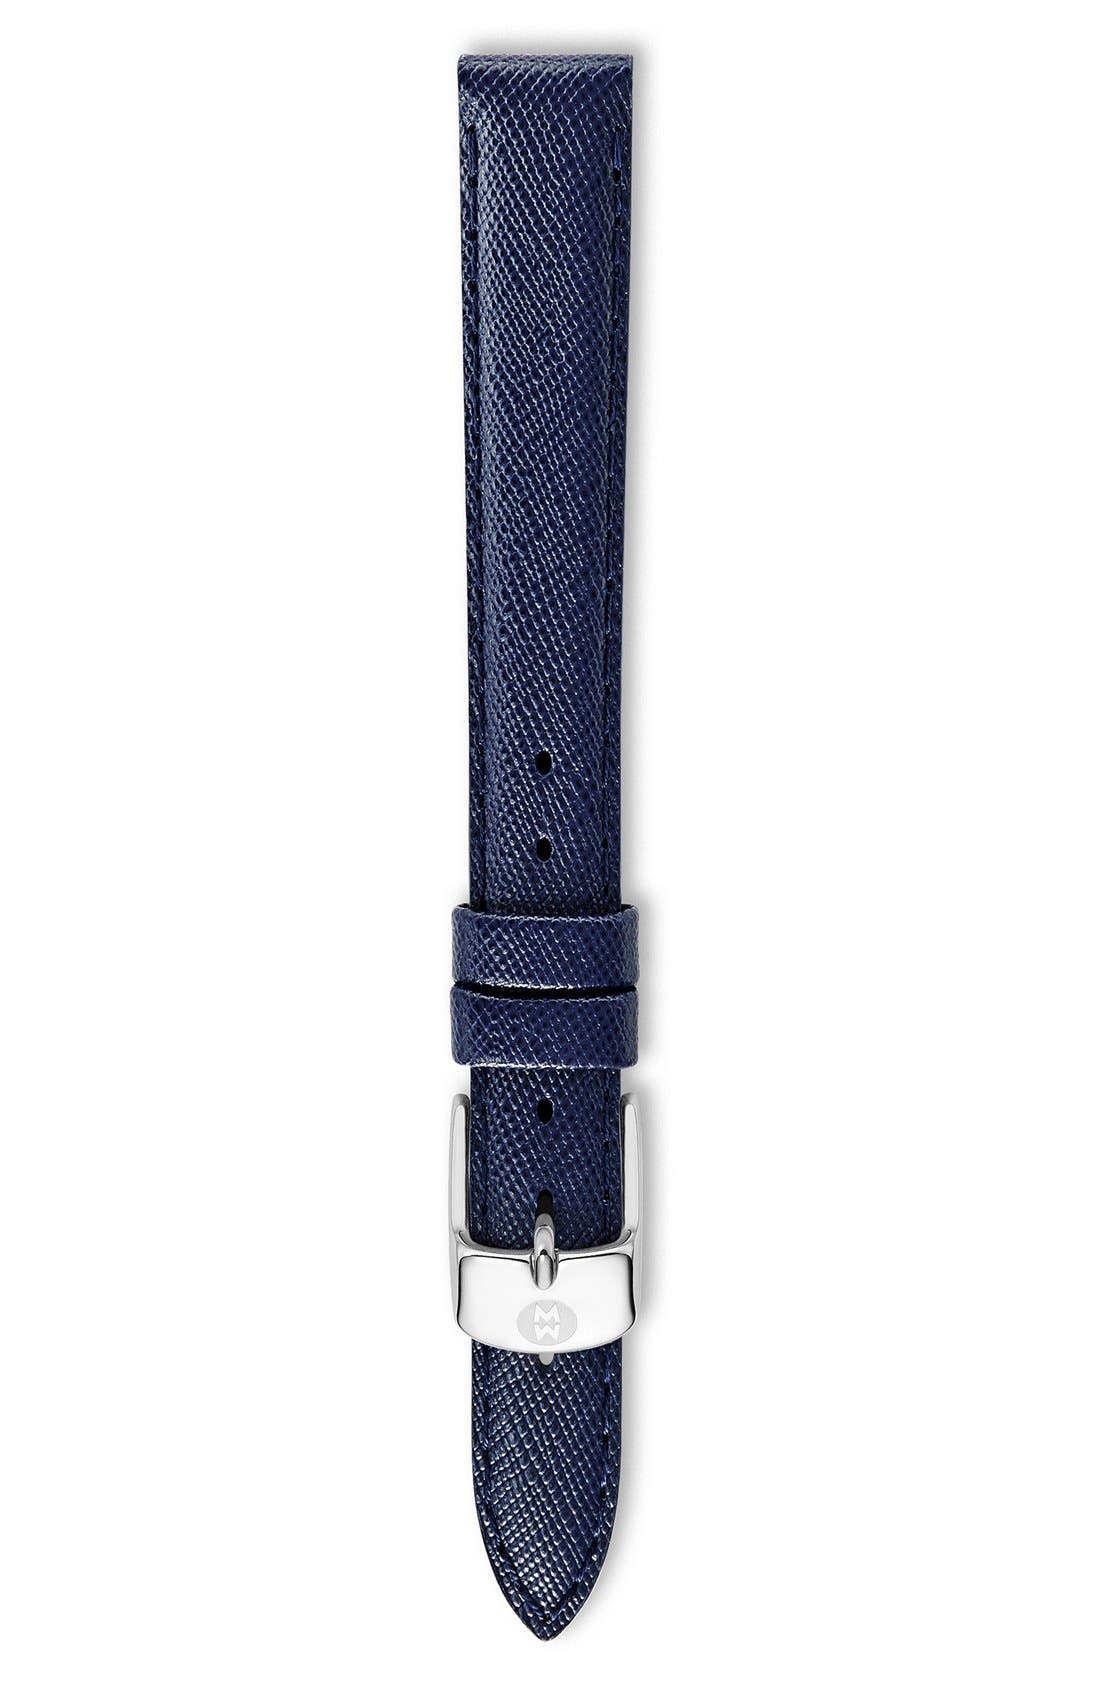 Alternate Image 1 Selected - MICHELE 12mm Saffiano Leather Watch Strap